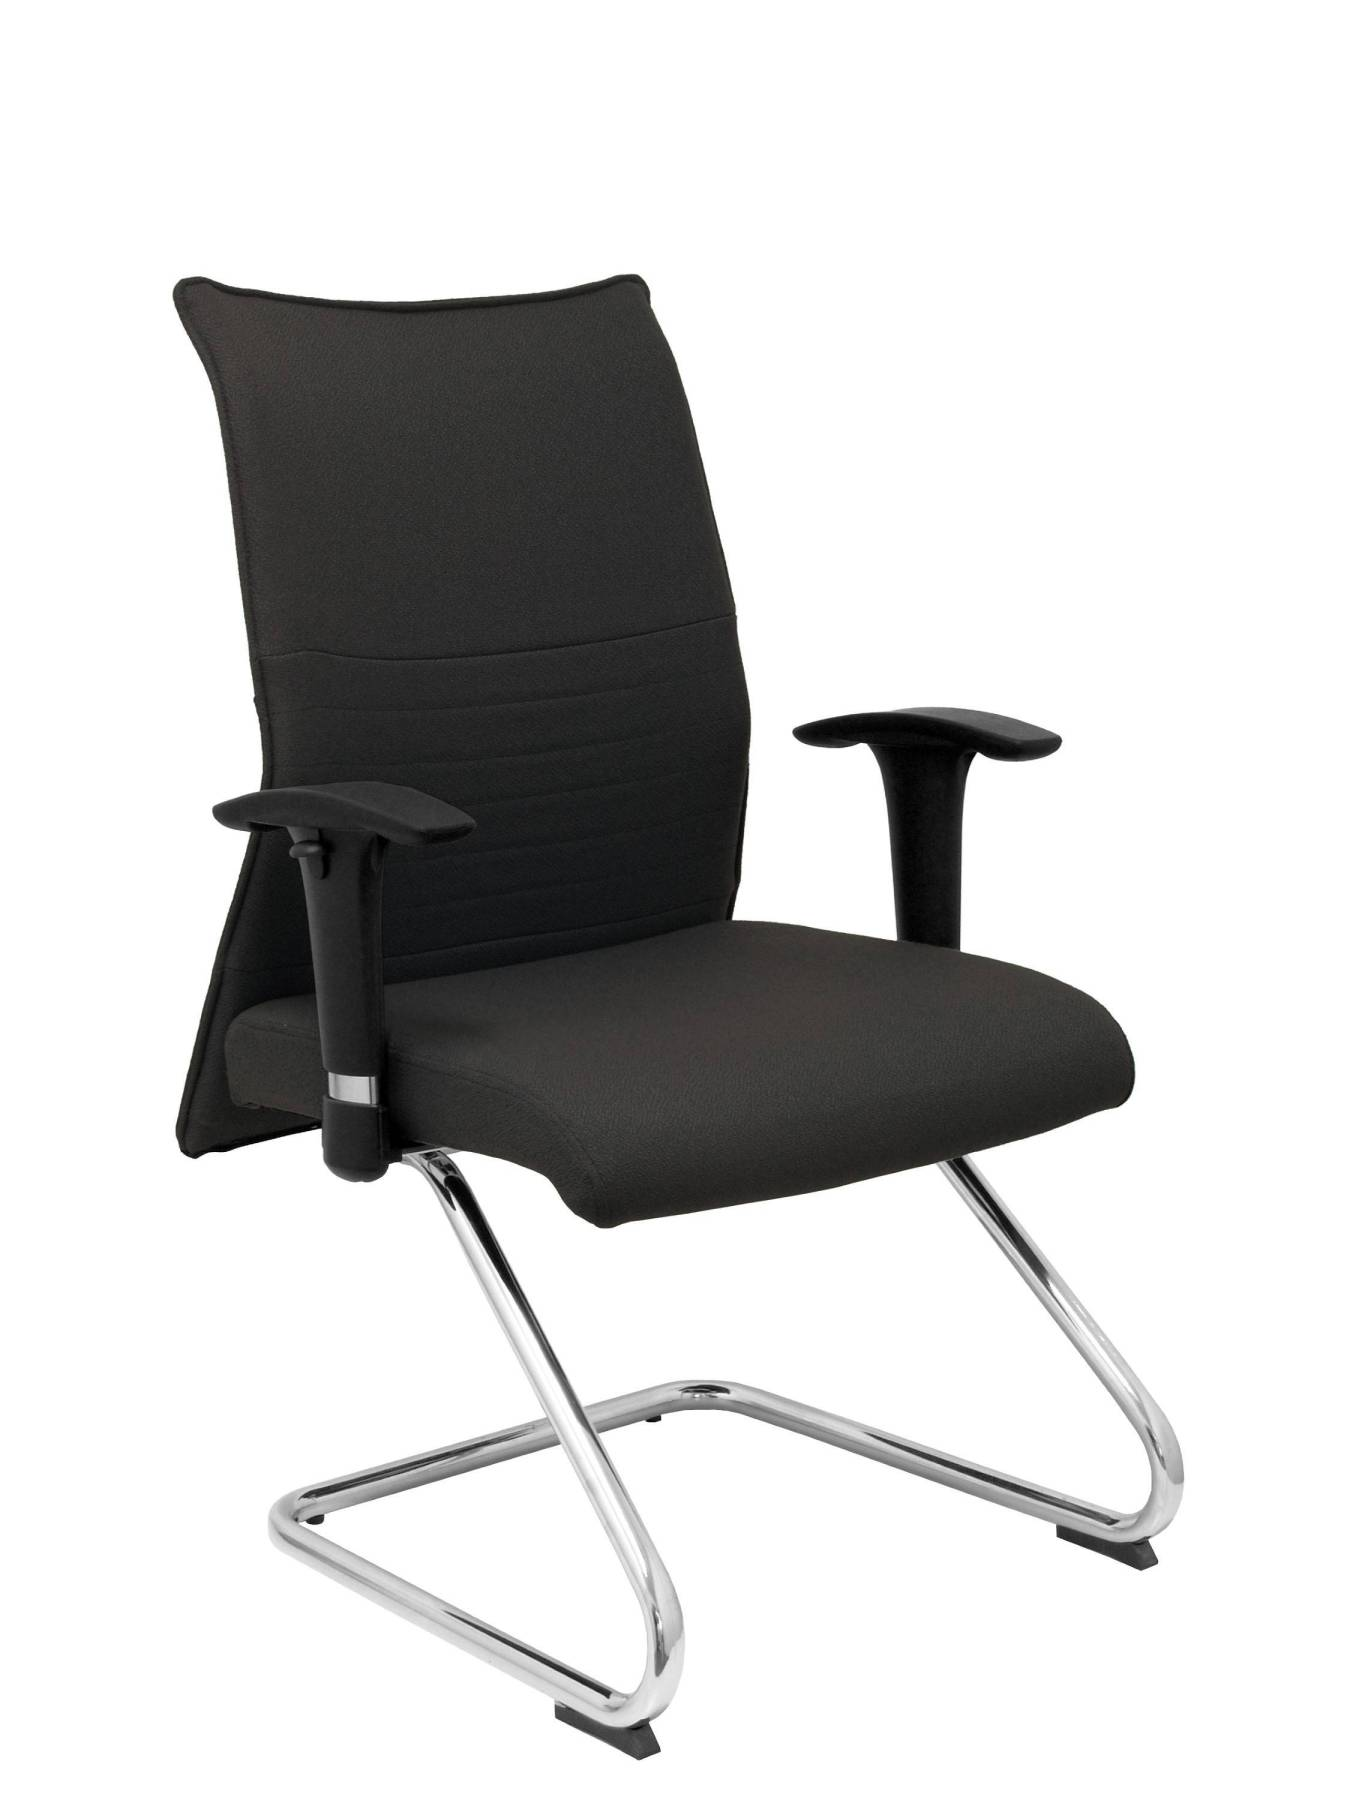 Armchair Confidante Ergonomic For Visits With Skate Chrome Up Seat And Backstop Upholstered In BALI Tissue Color Black